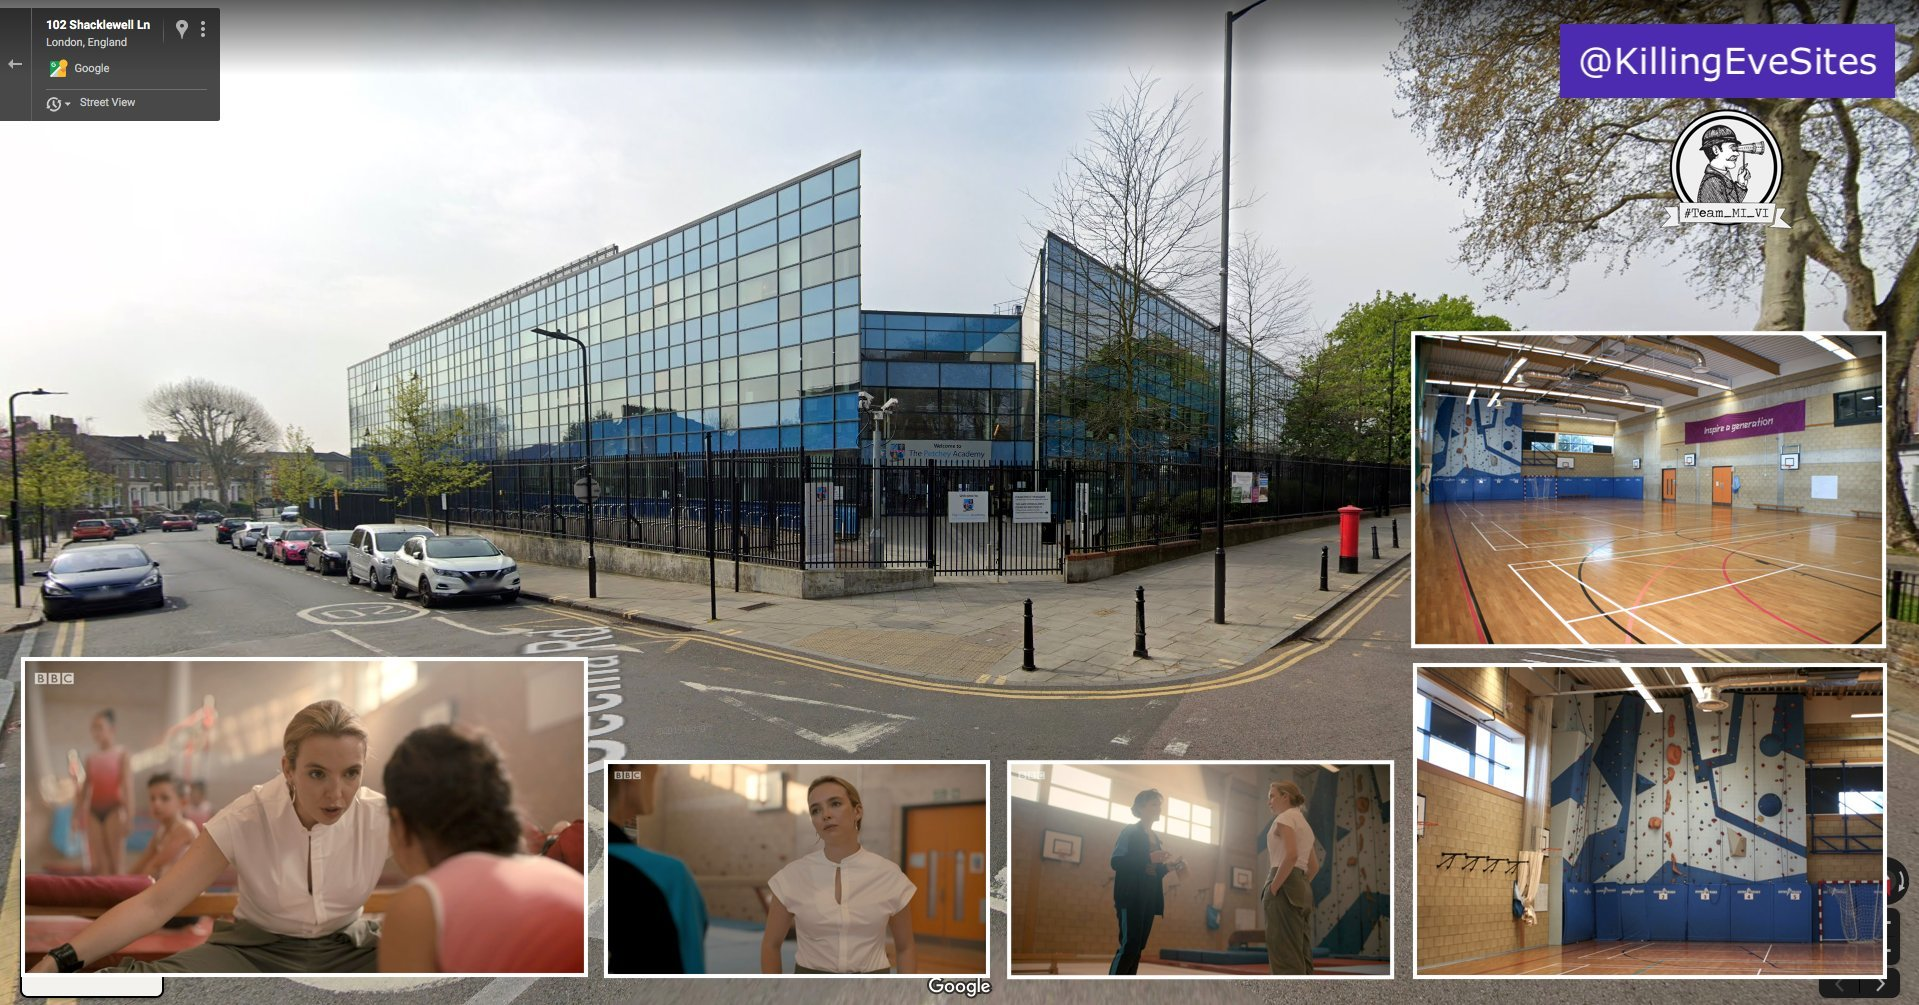 The Petchey Academy was recently used as a location for the new series of Killing Eve